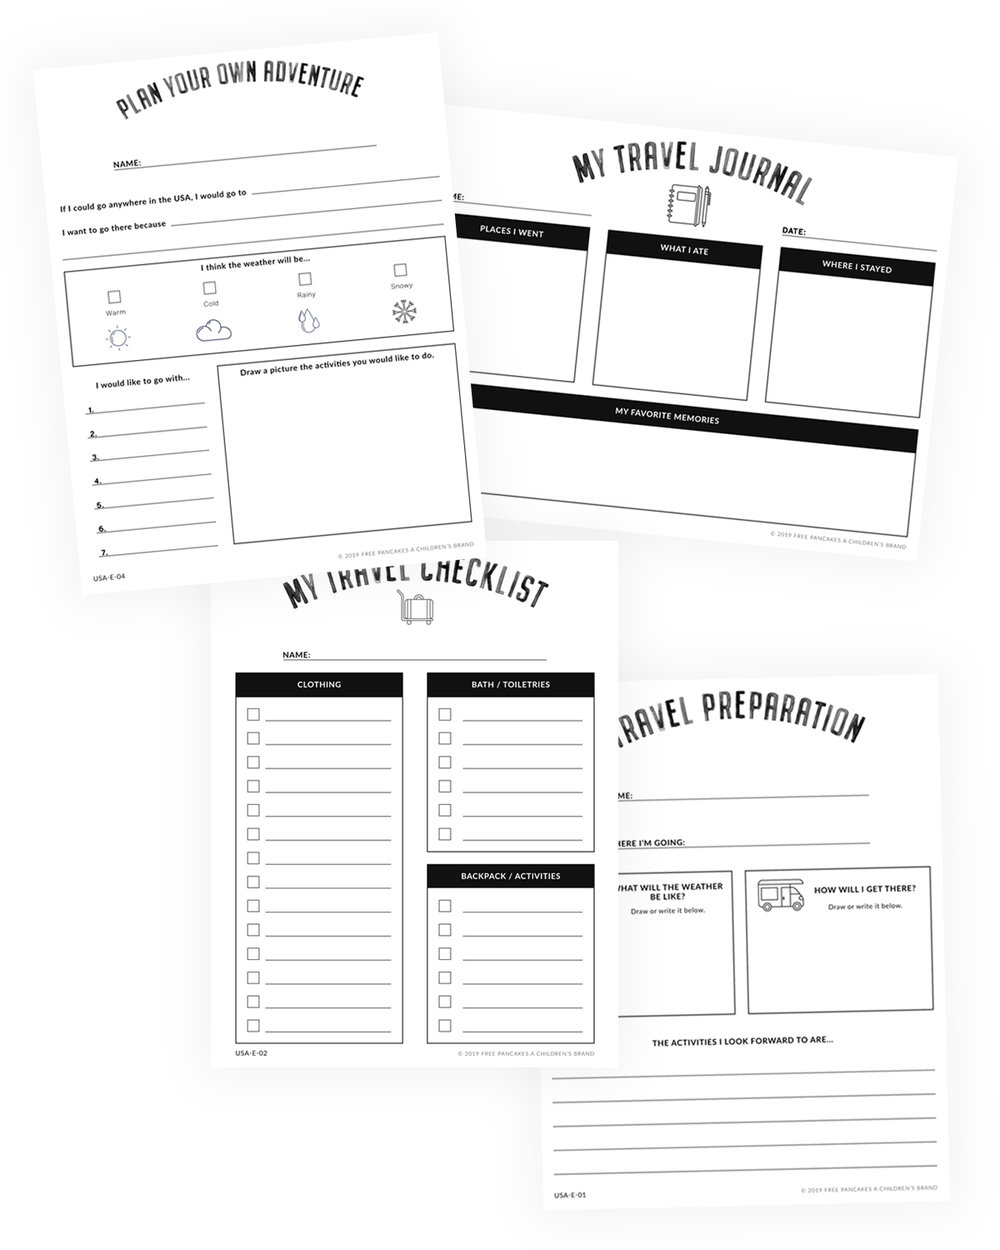 Printable Travel Journal And Travel Checklists For Kids Homeschool Learning United States Geography Kindergarten Curriculum [ 1250 x 1000 Pixel ]